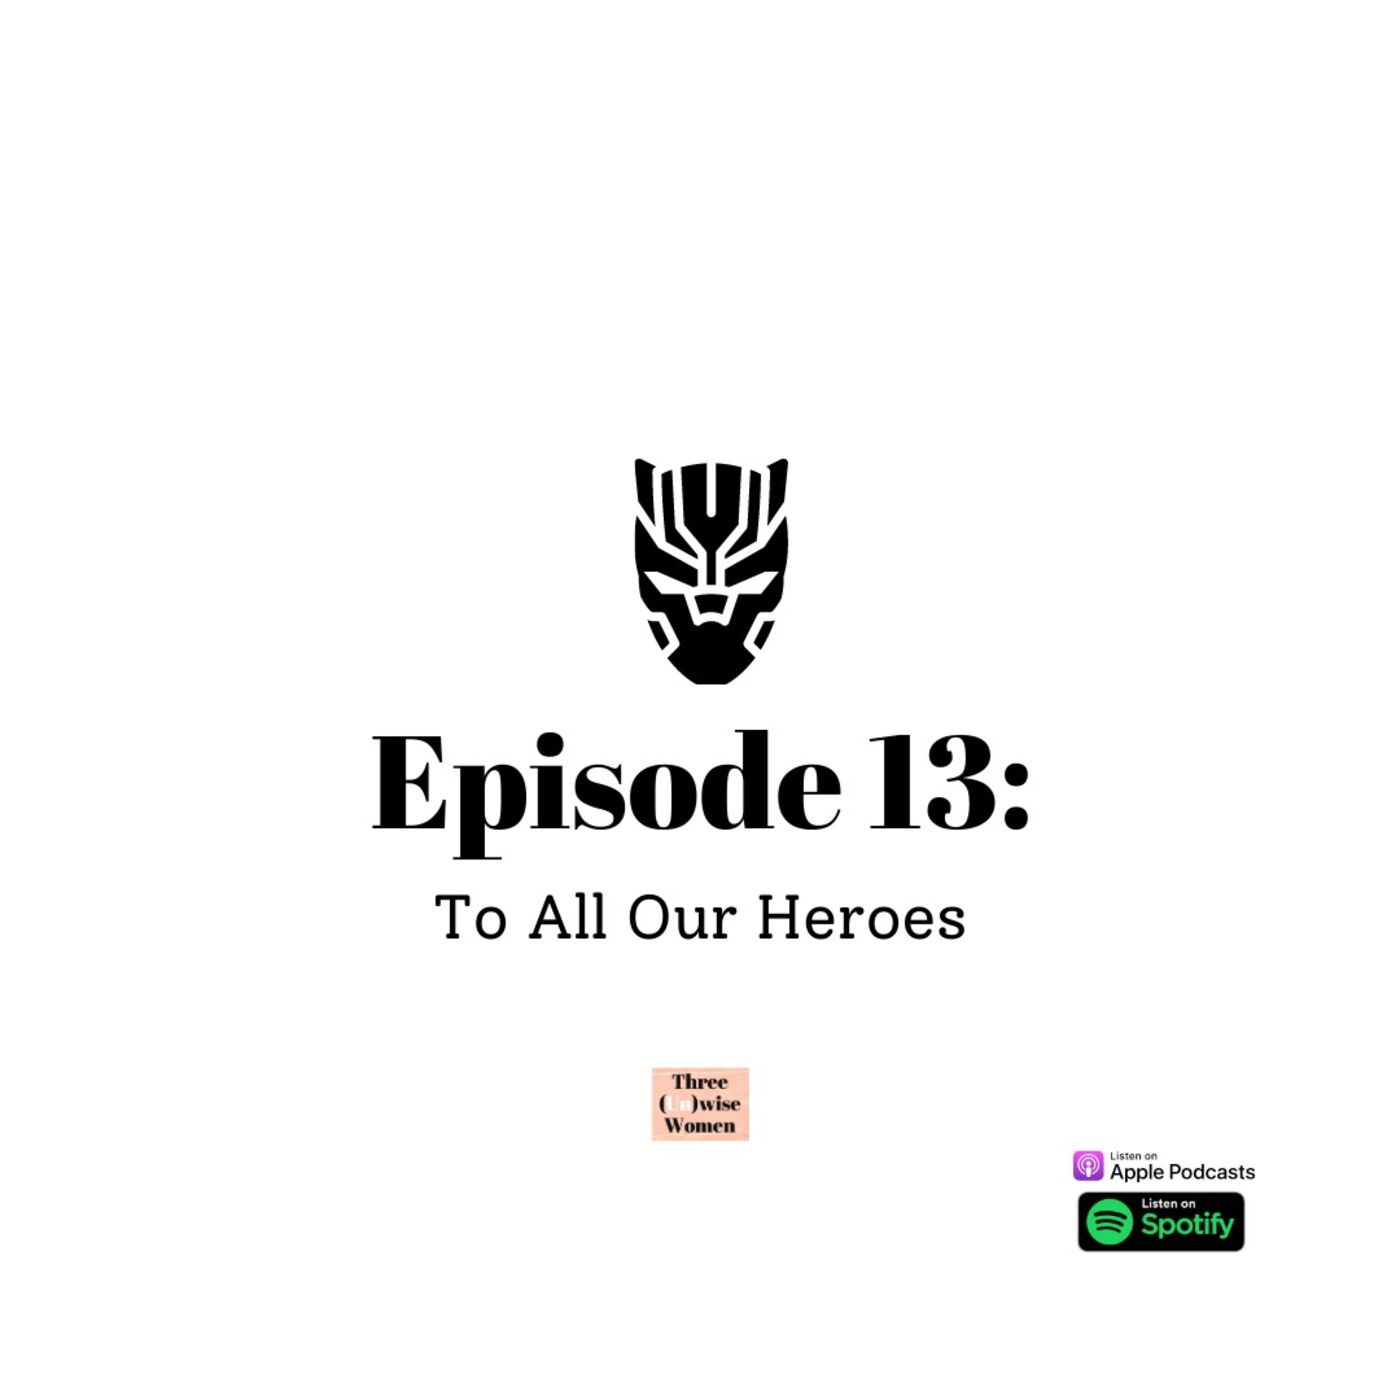 To All Our Heroes